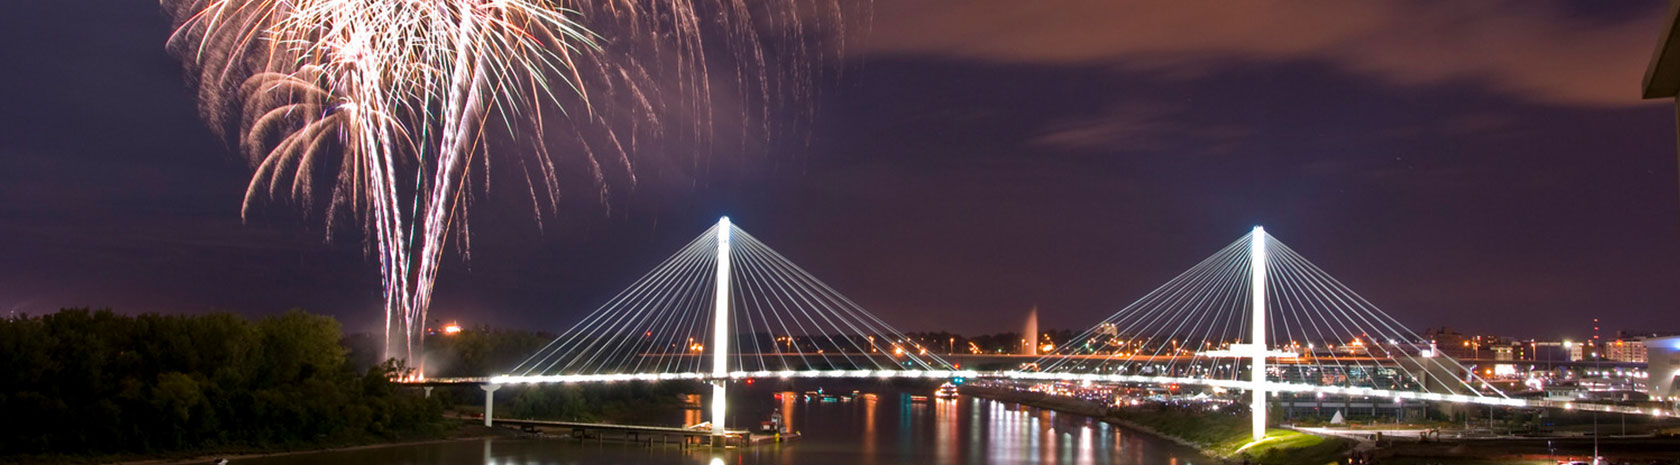 A wide shot of a brightly lit bridge with fireworks firing off from the far end